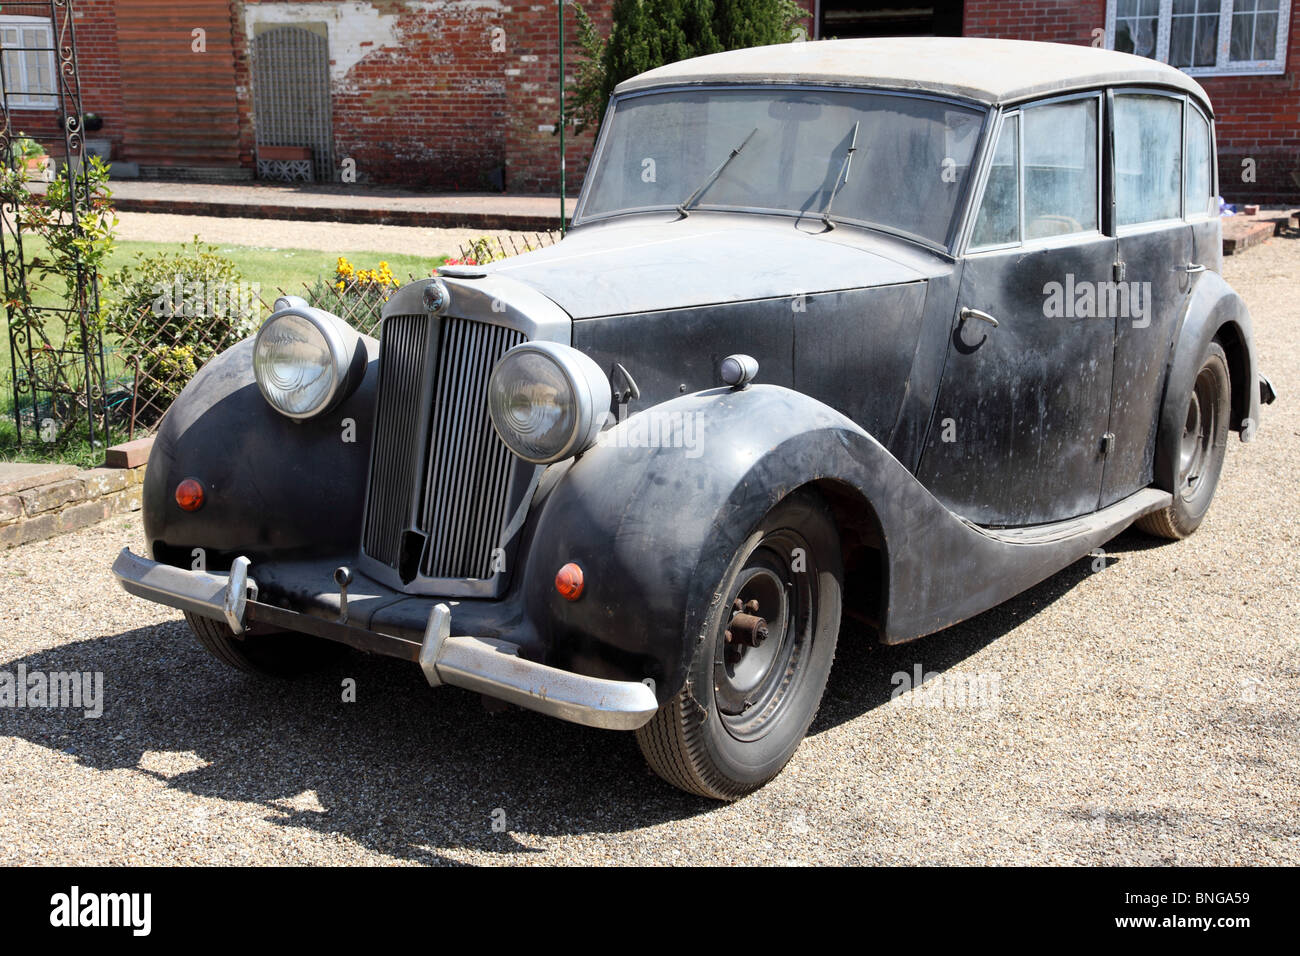 Barn Find 1945 Triumph T1800 Saloon Classic Car In Need Of Restoration